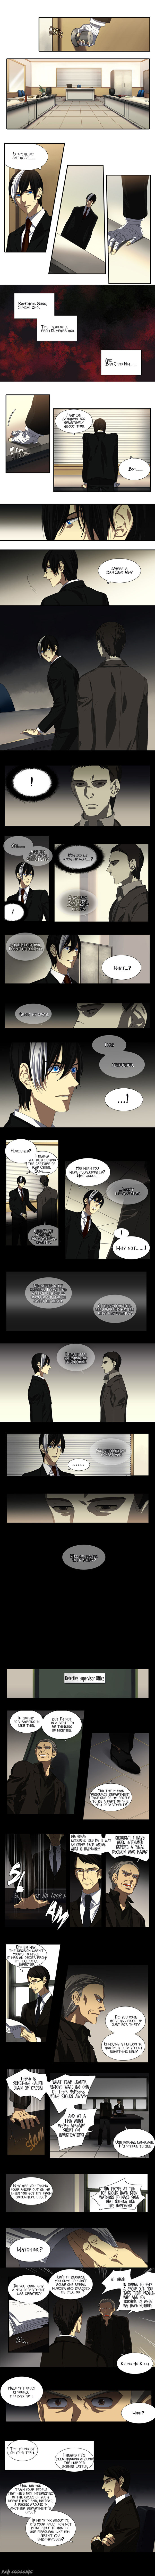 Supernatural Investigation Department 35 Page 2